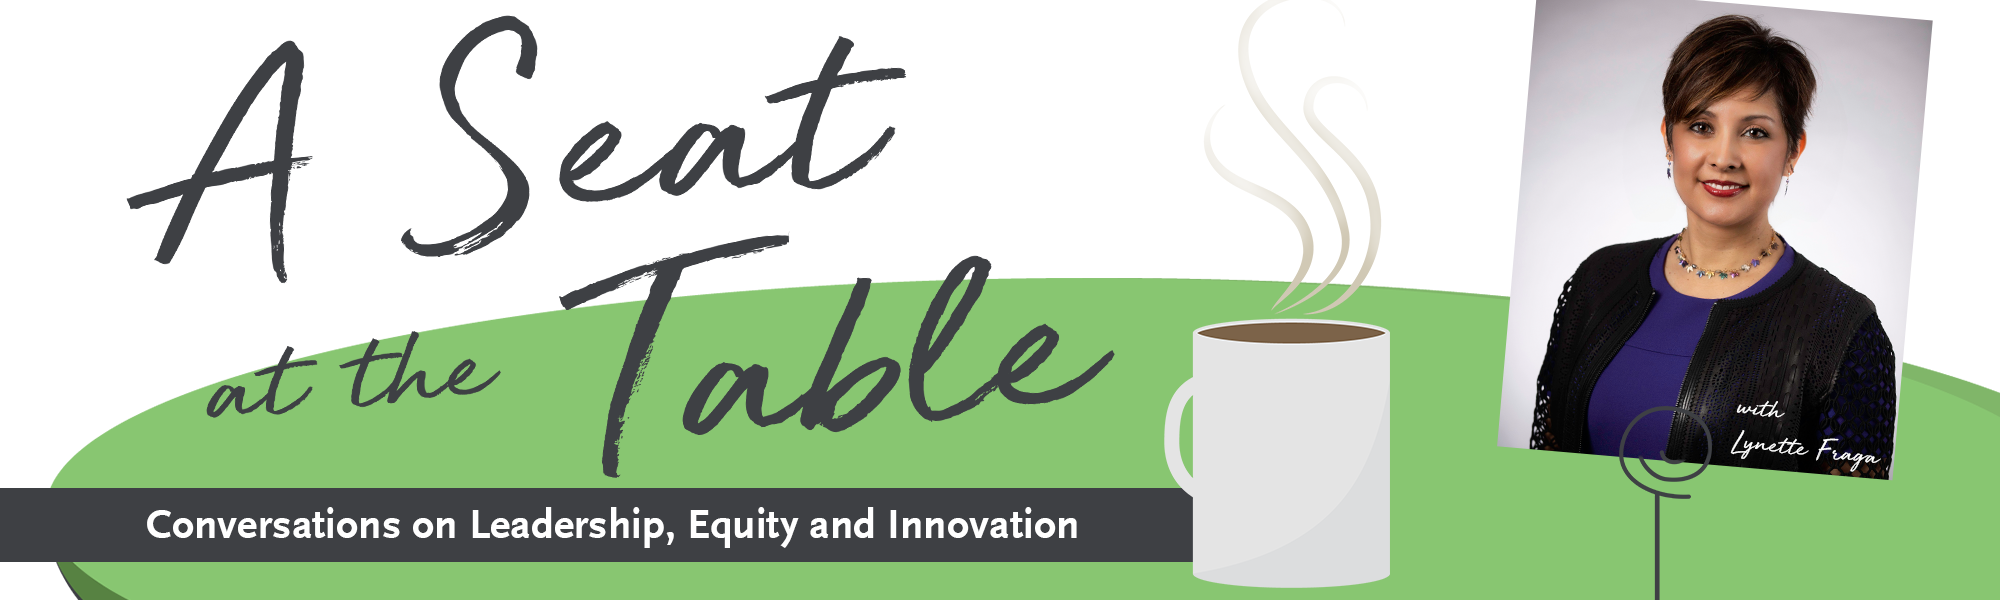 A Seat at the Table: Conversations on Leadership, Equity, and Innovation, with Lynette Fraga